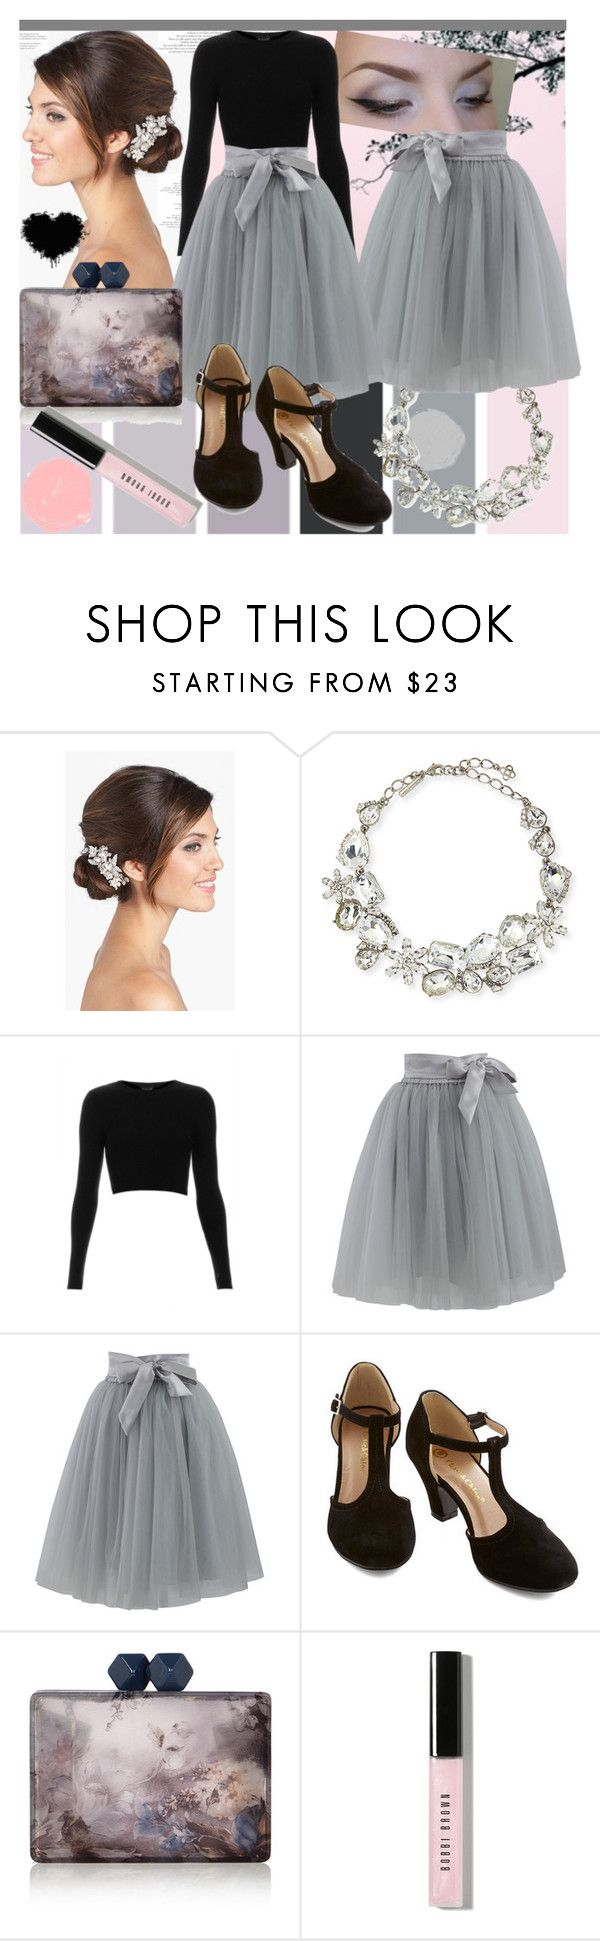 """""""Twilight Shadows in the Garden"""" by alis0nnels0n ❤ liked on Polyvore featuring Seed Design, Wedding Belles New York, Oscar de la Renta, Topshop, Chicwish, Coast, Bobbi Brown Cosmetics, Pink, grey and tulleskirts"""